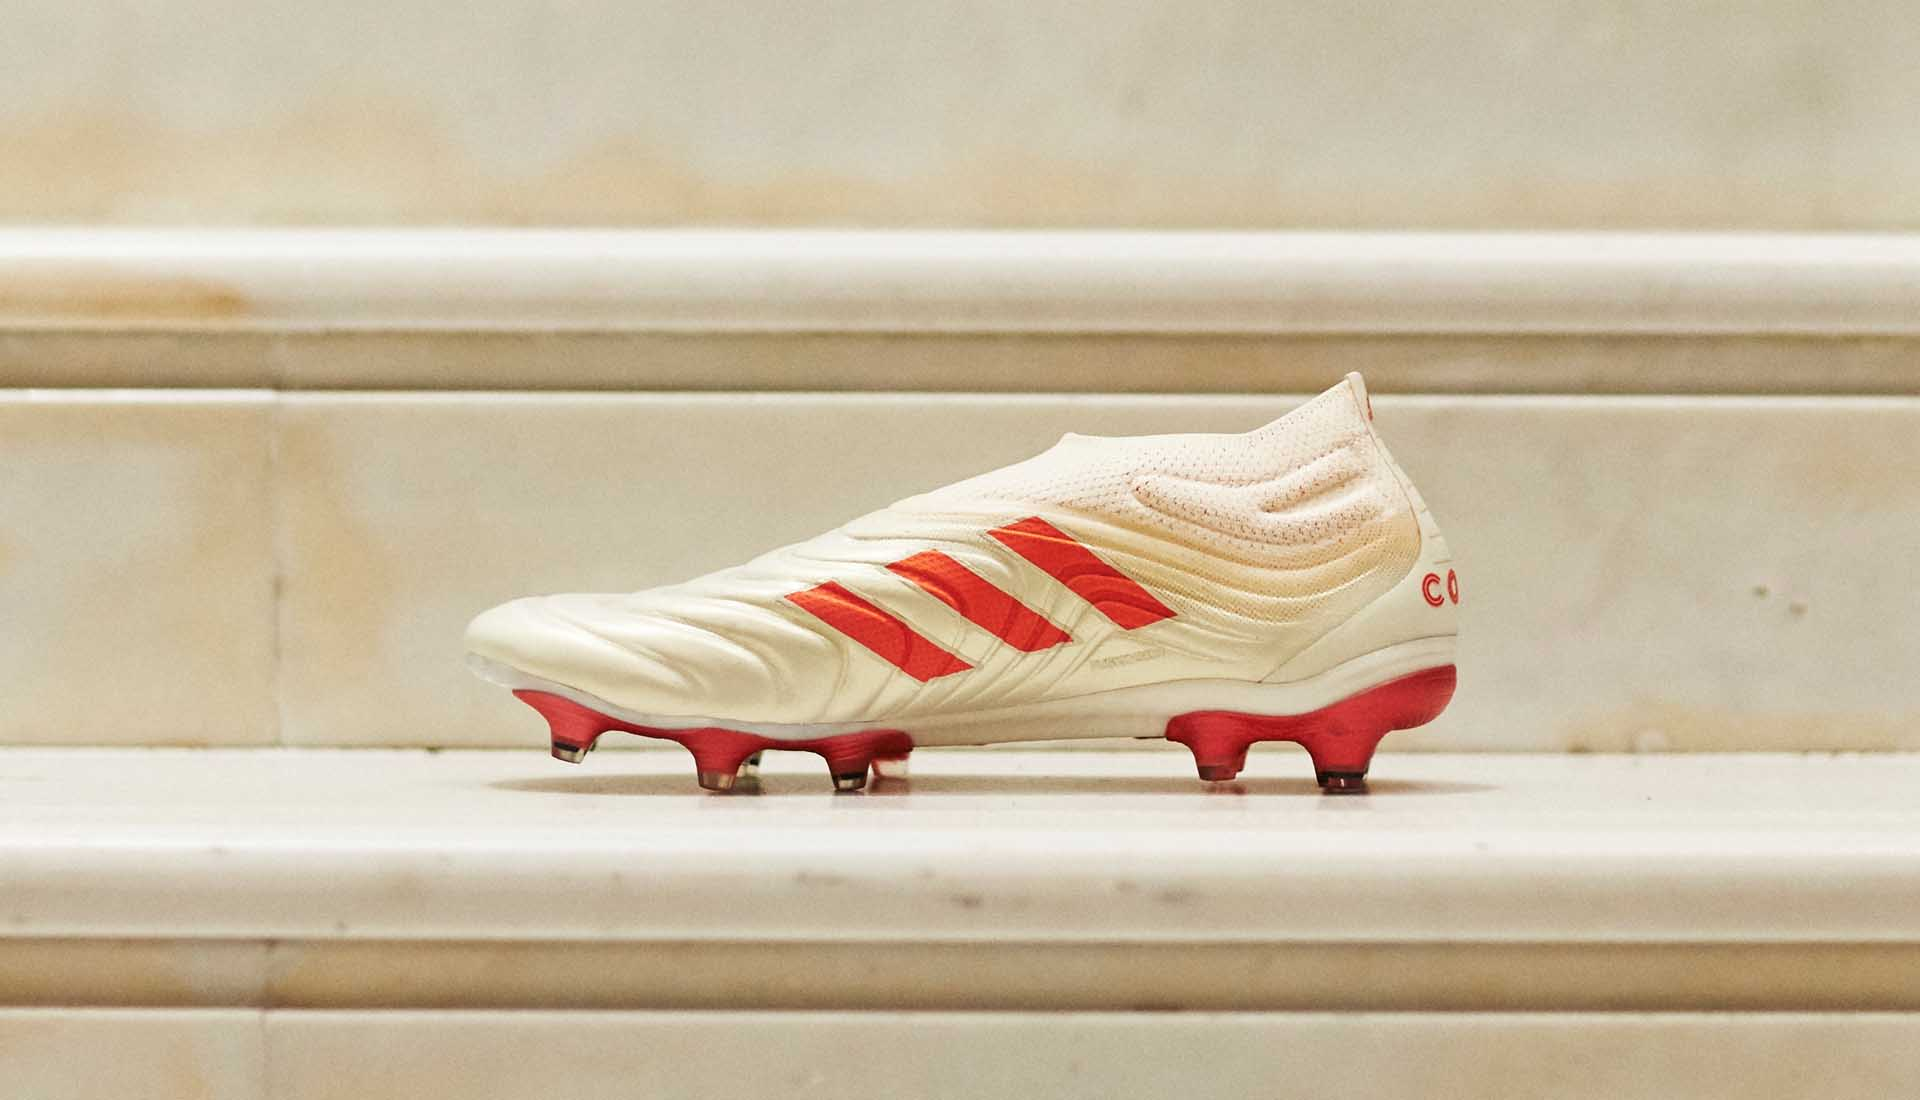 9c90dfdd7 adidas Launch The New COPA 19+ - SoccerBible